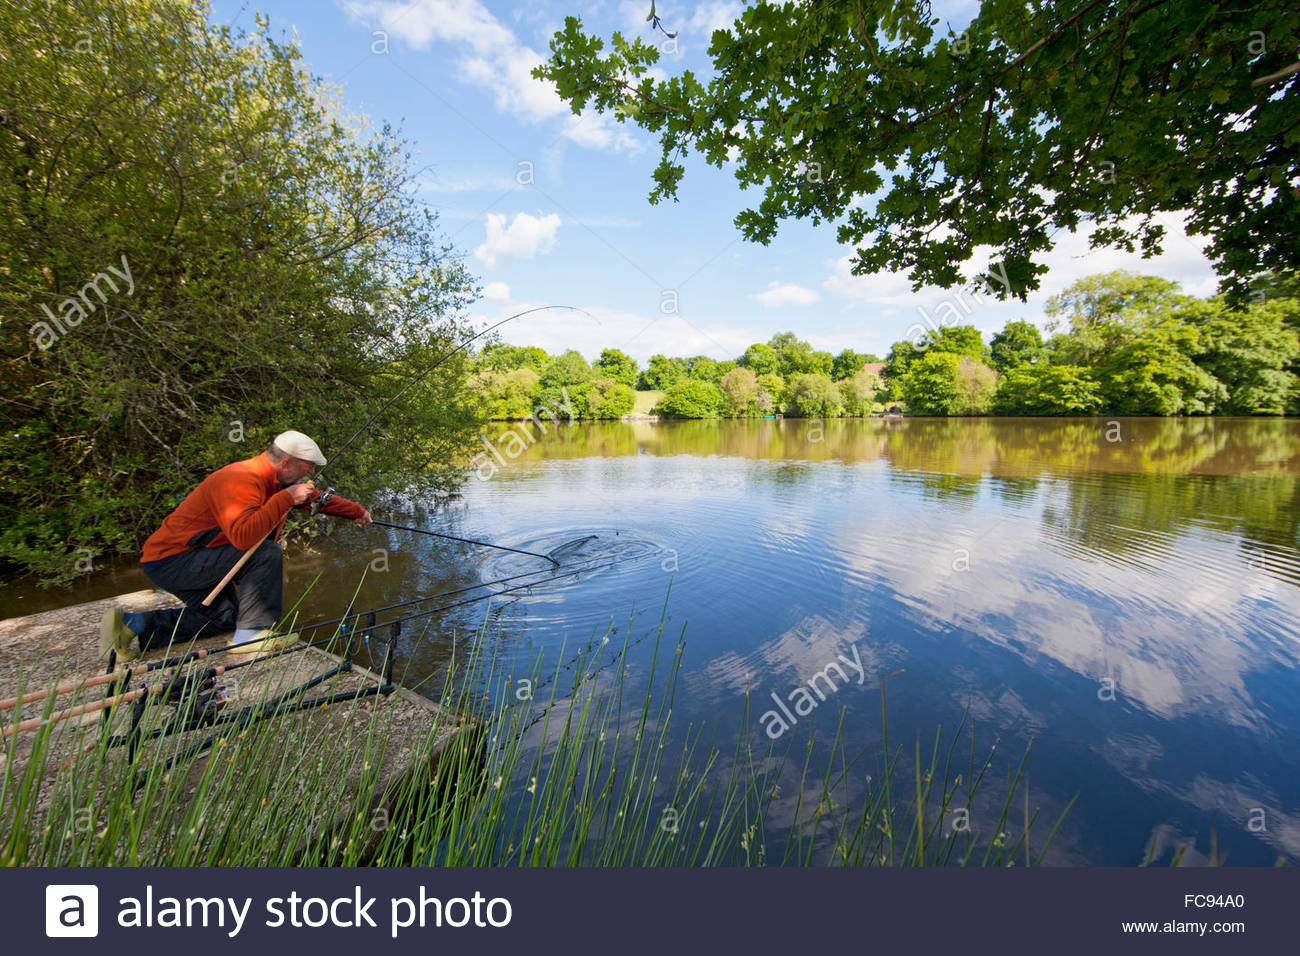 Fisherman landing fish from lake caught on rod - Stock Image